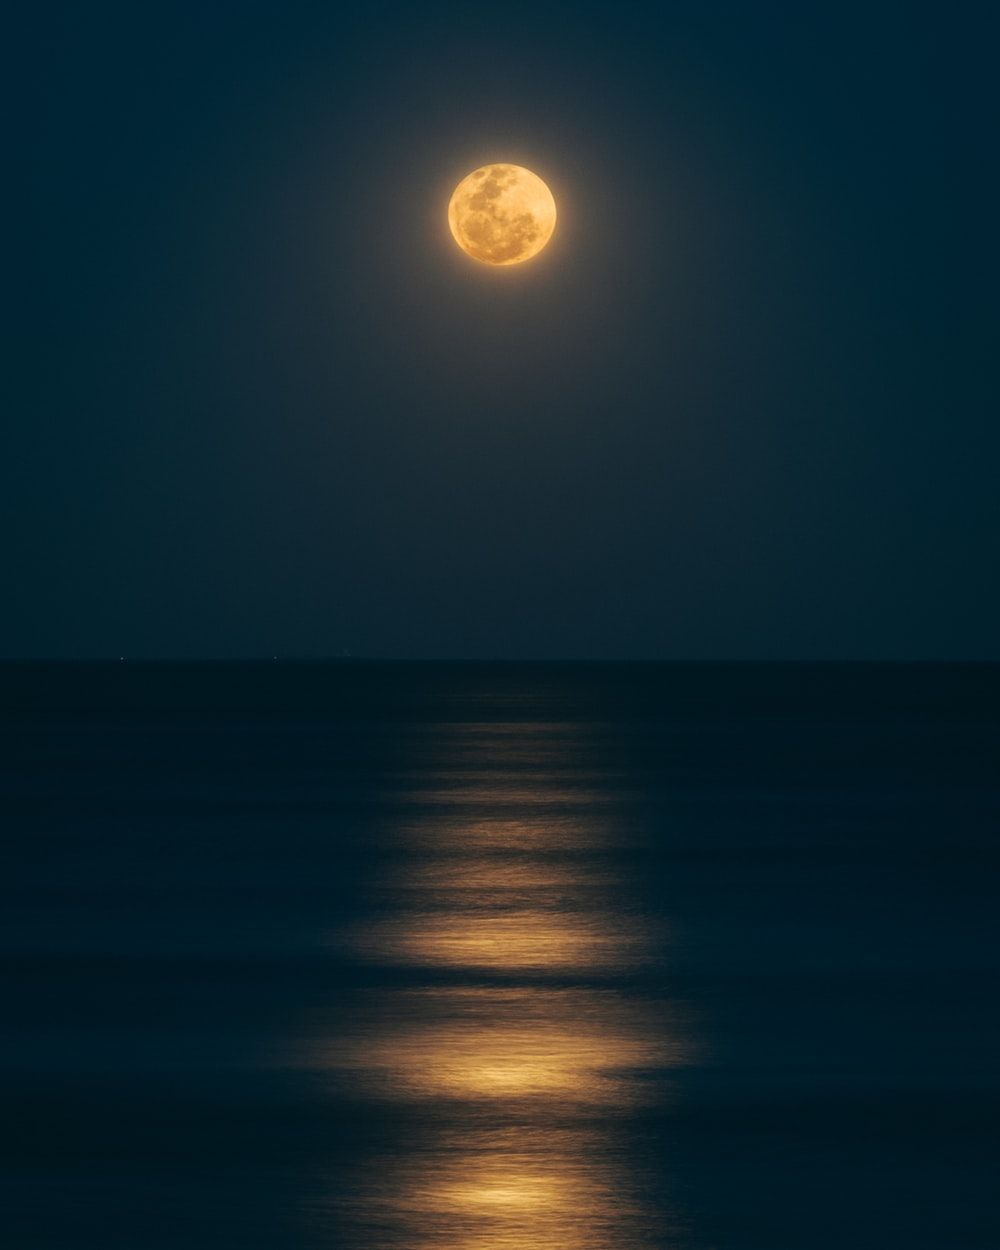 Full Moon HD Wallpapers   Top Full Moon HD Backgrounds 1000x1250